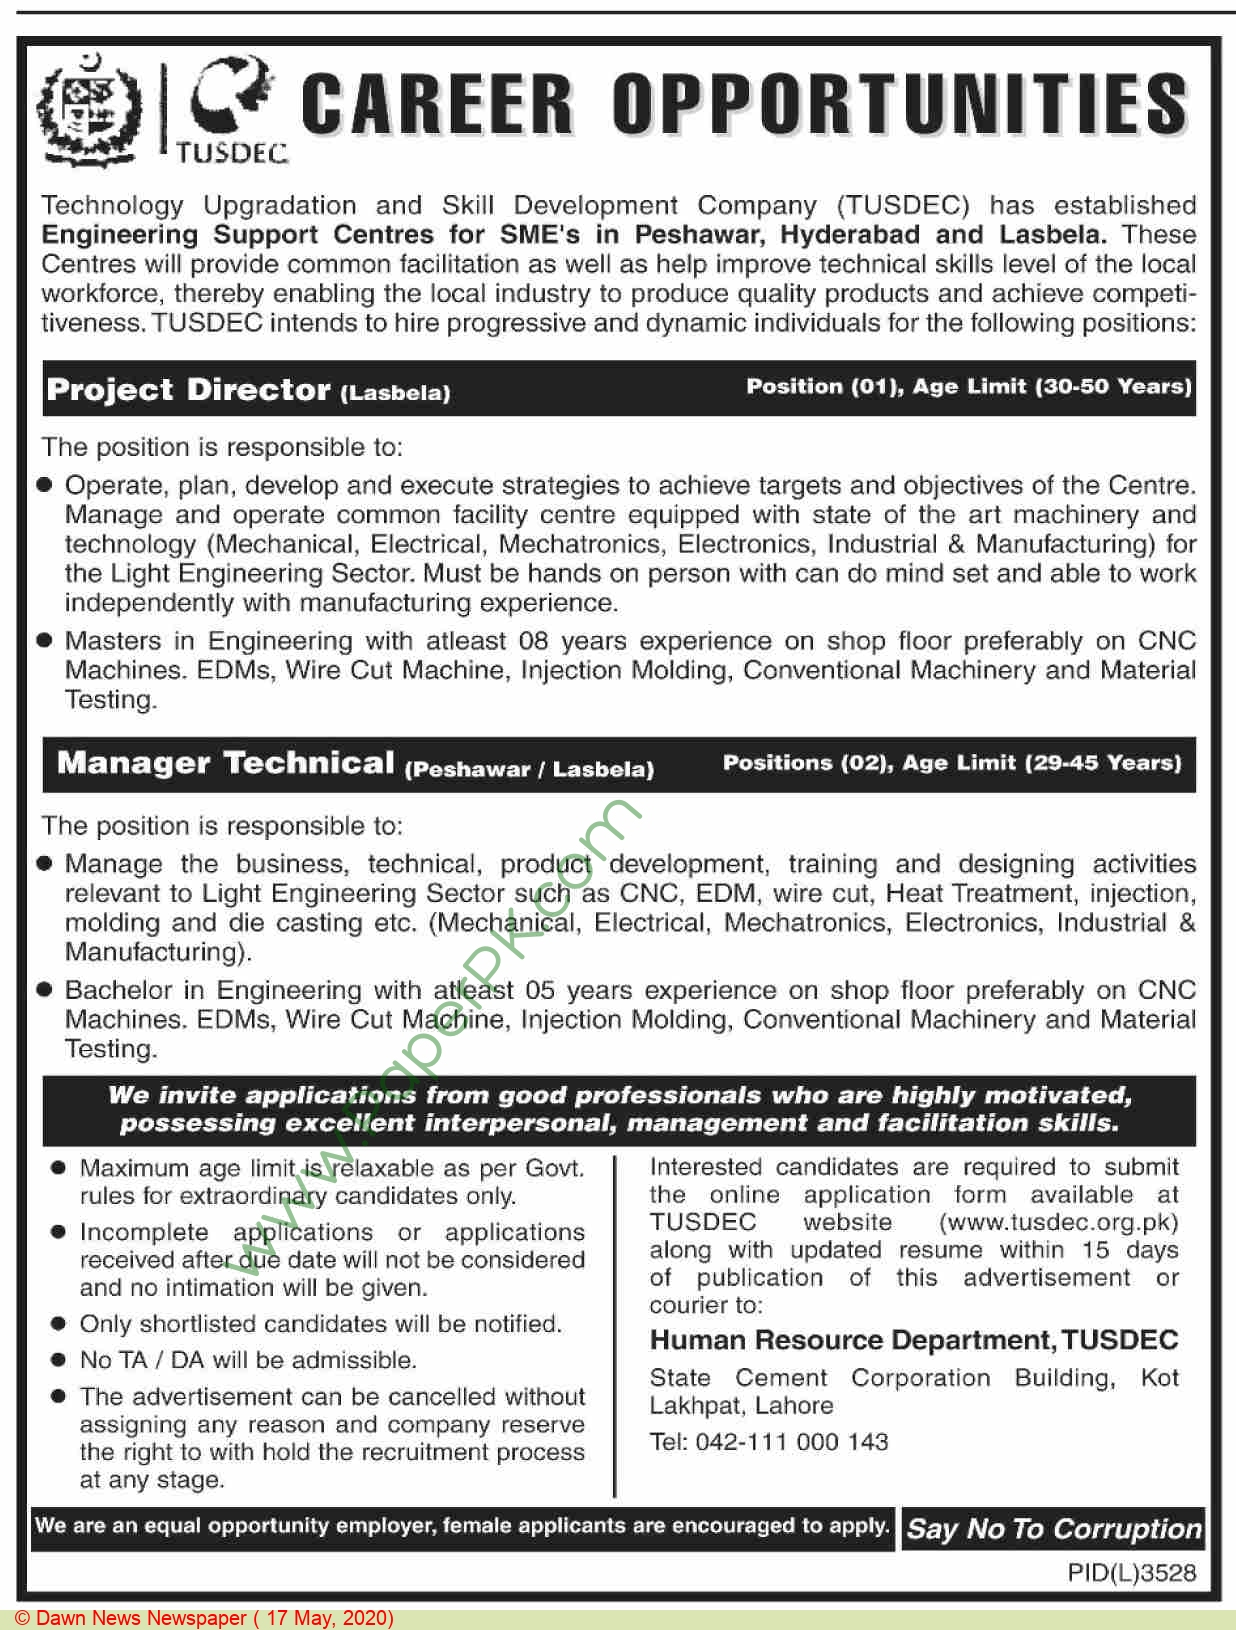 Technology Upgradation & Skill Development Company jobs newspaper ad for Manager Technical in Peshawar